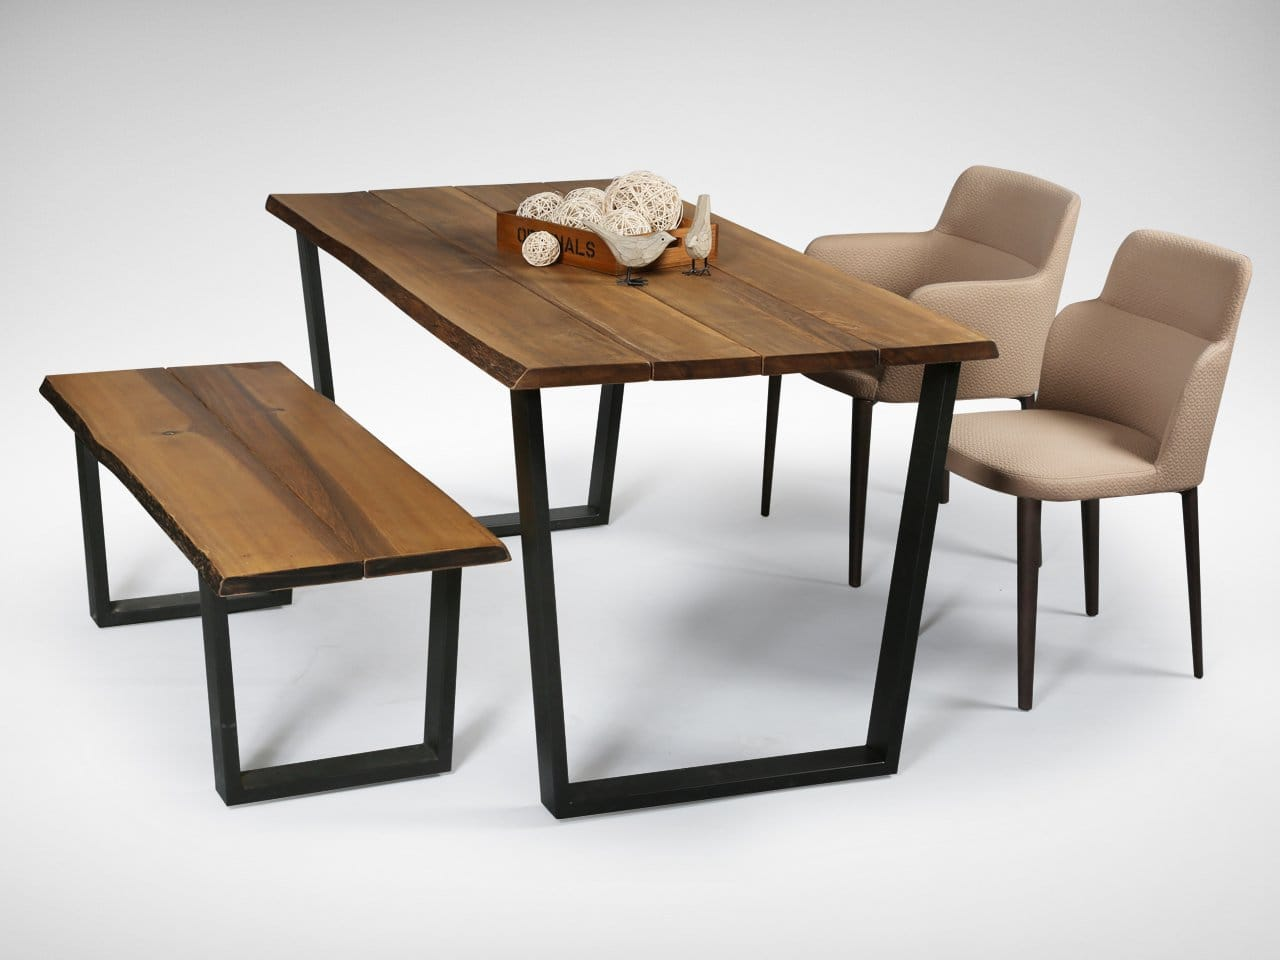 [Duncan Bench, Duncan Dining Table, Grange Sidechair & Grange Armchair in Brown color fabric]